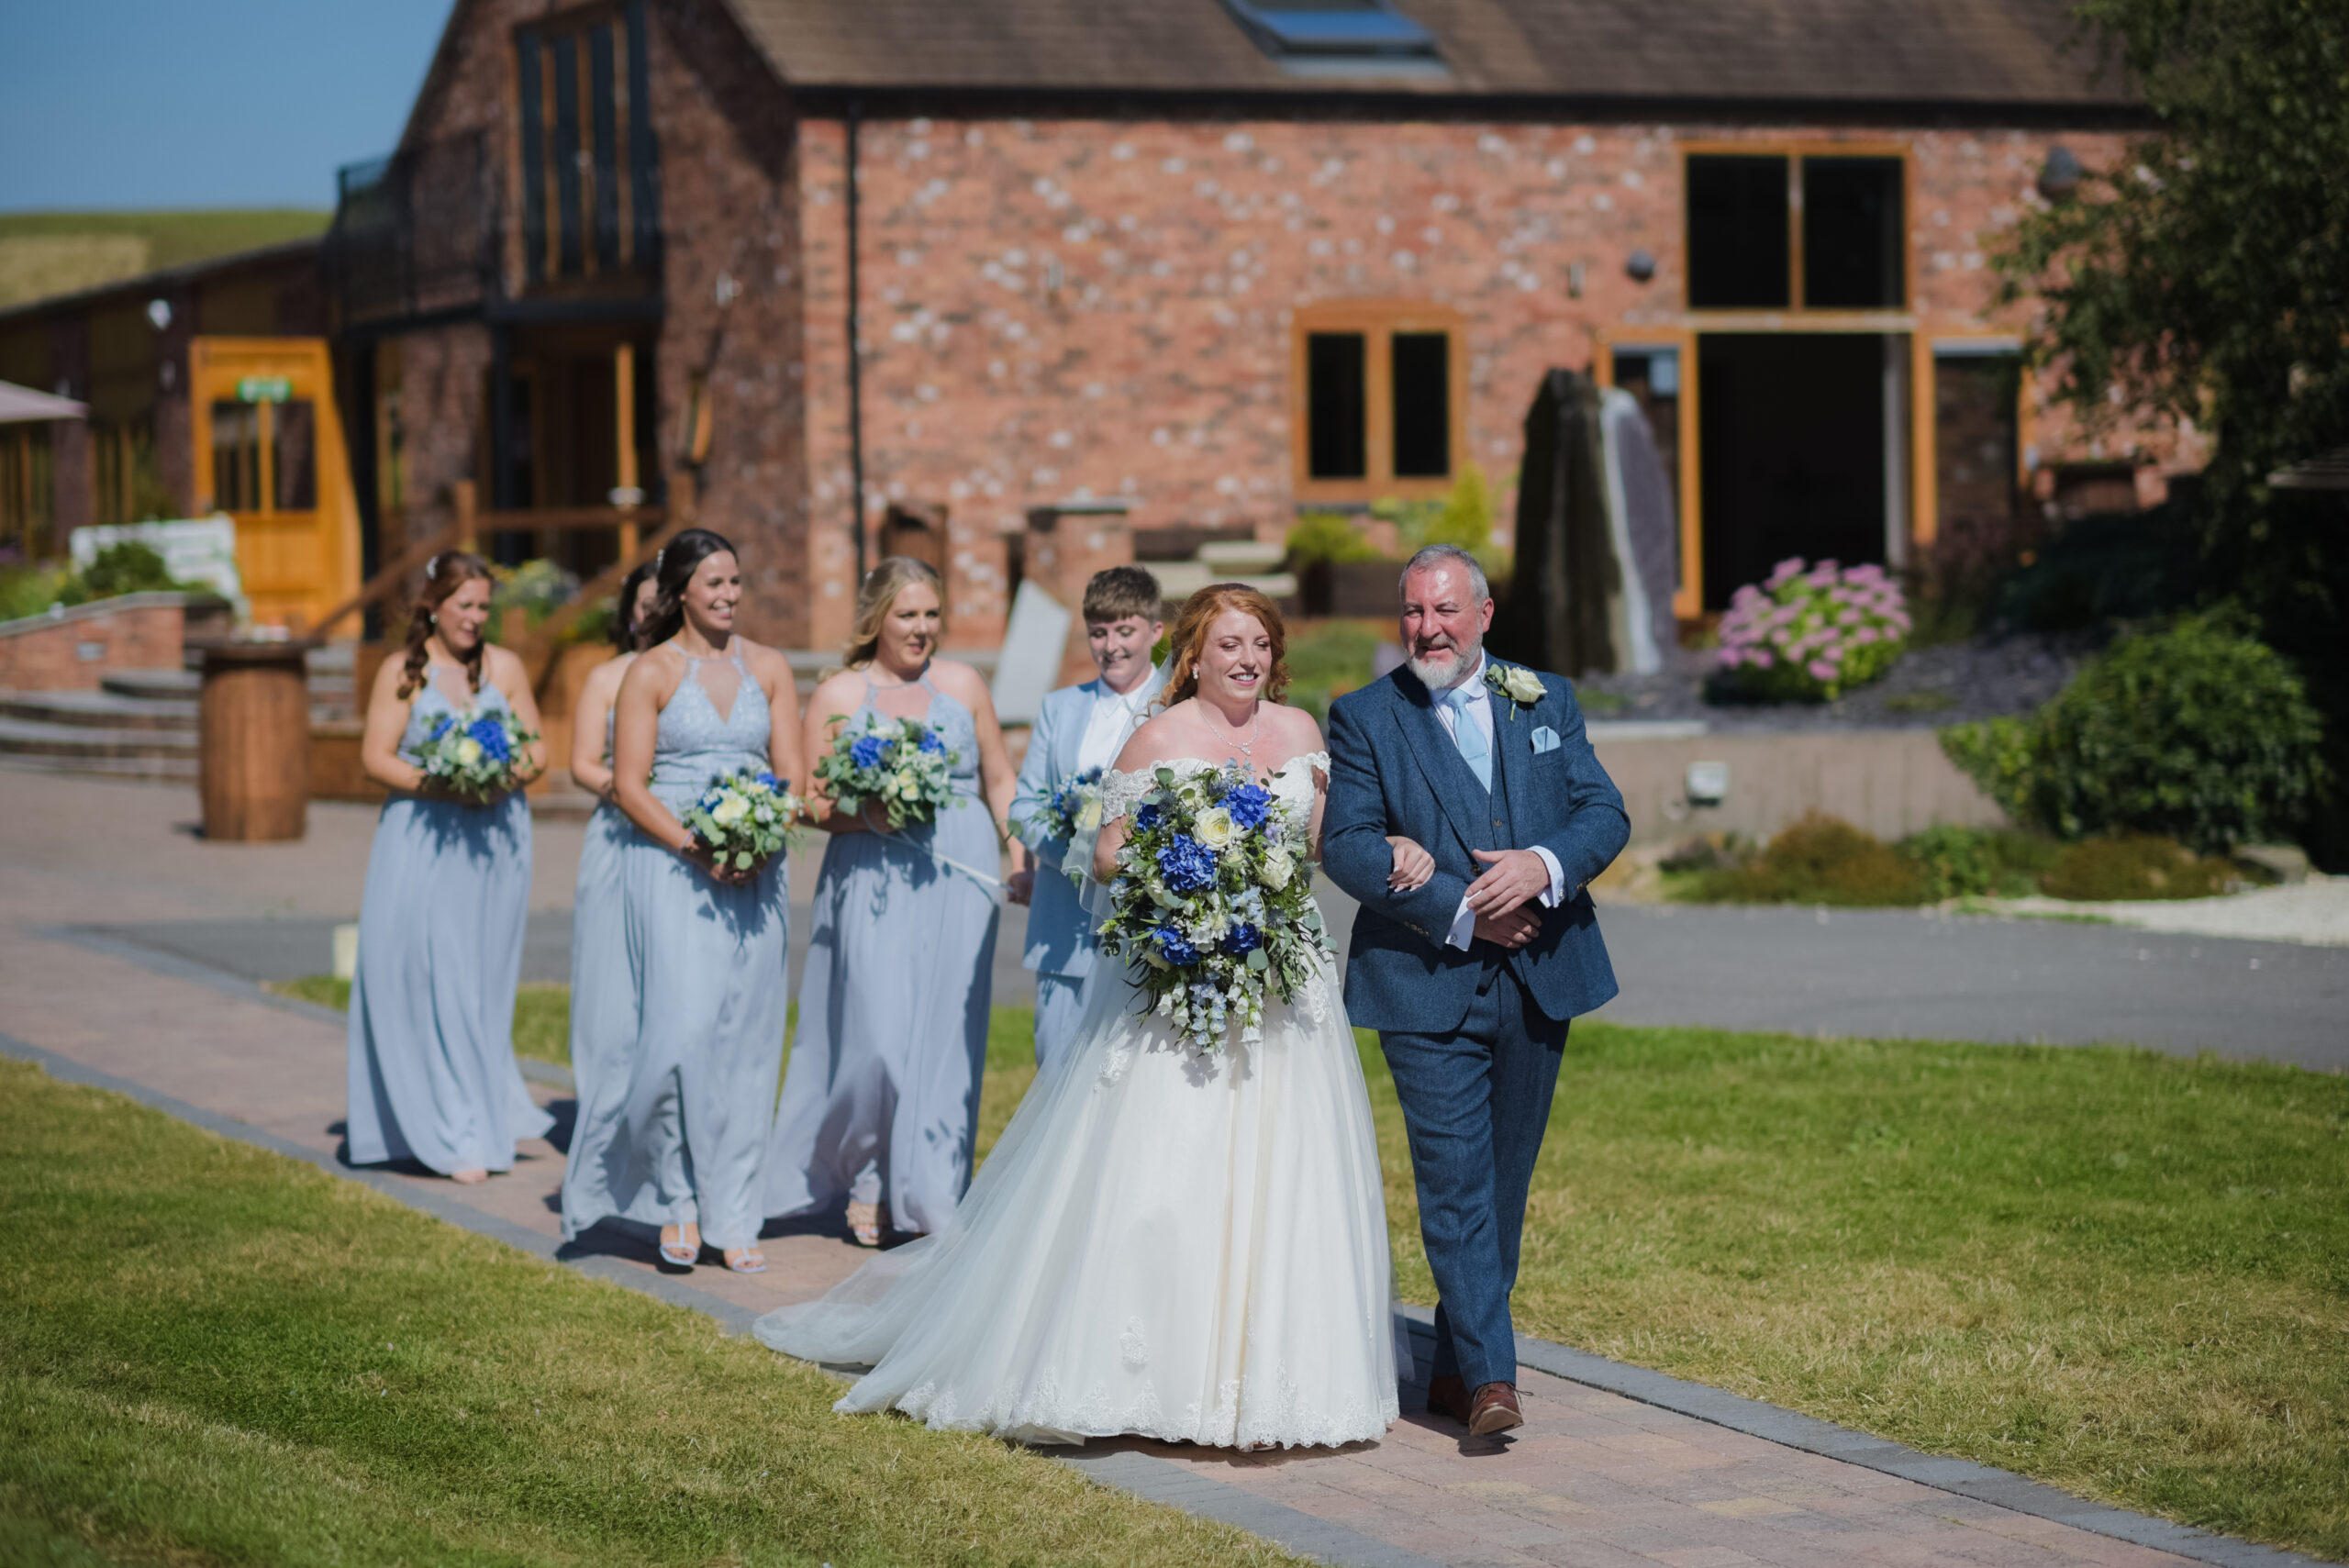 The Bridal Party Beautiful Wedding Photography at Wootton Park